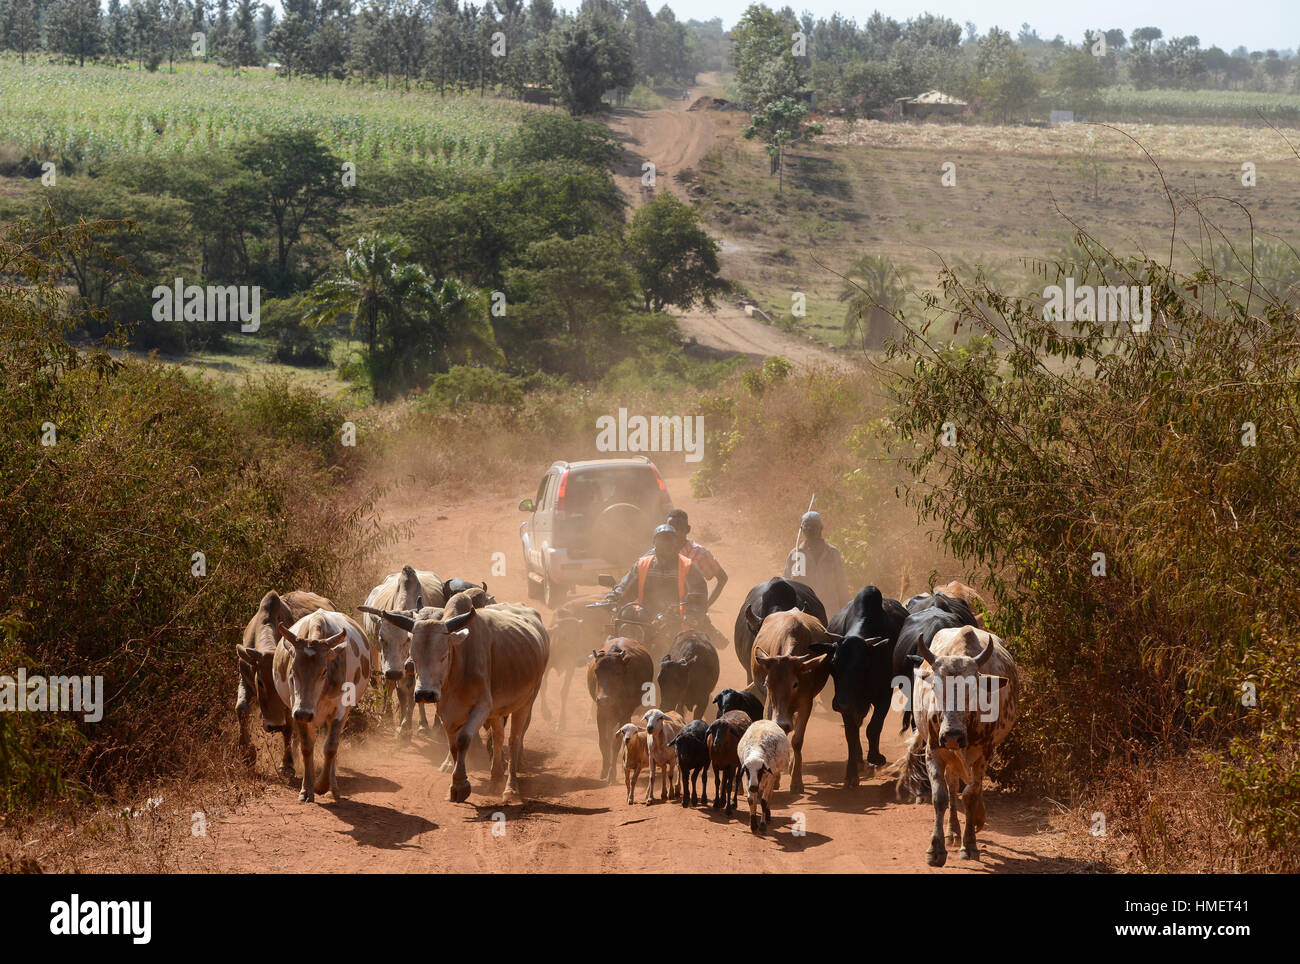 KENIA, Mount Kenya East, Region South Ngariama , extreme drought due to lack of rain has caused massive water problems, - Stock Image